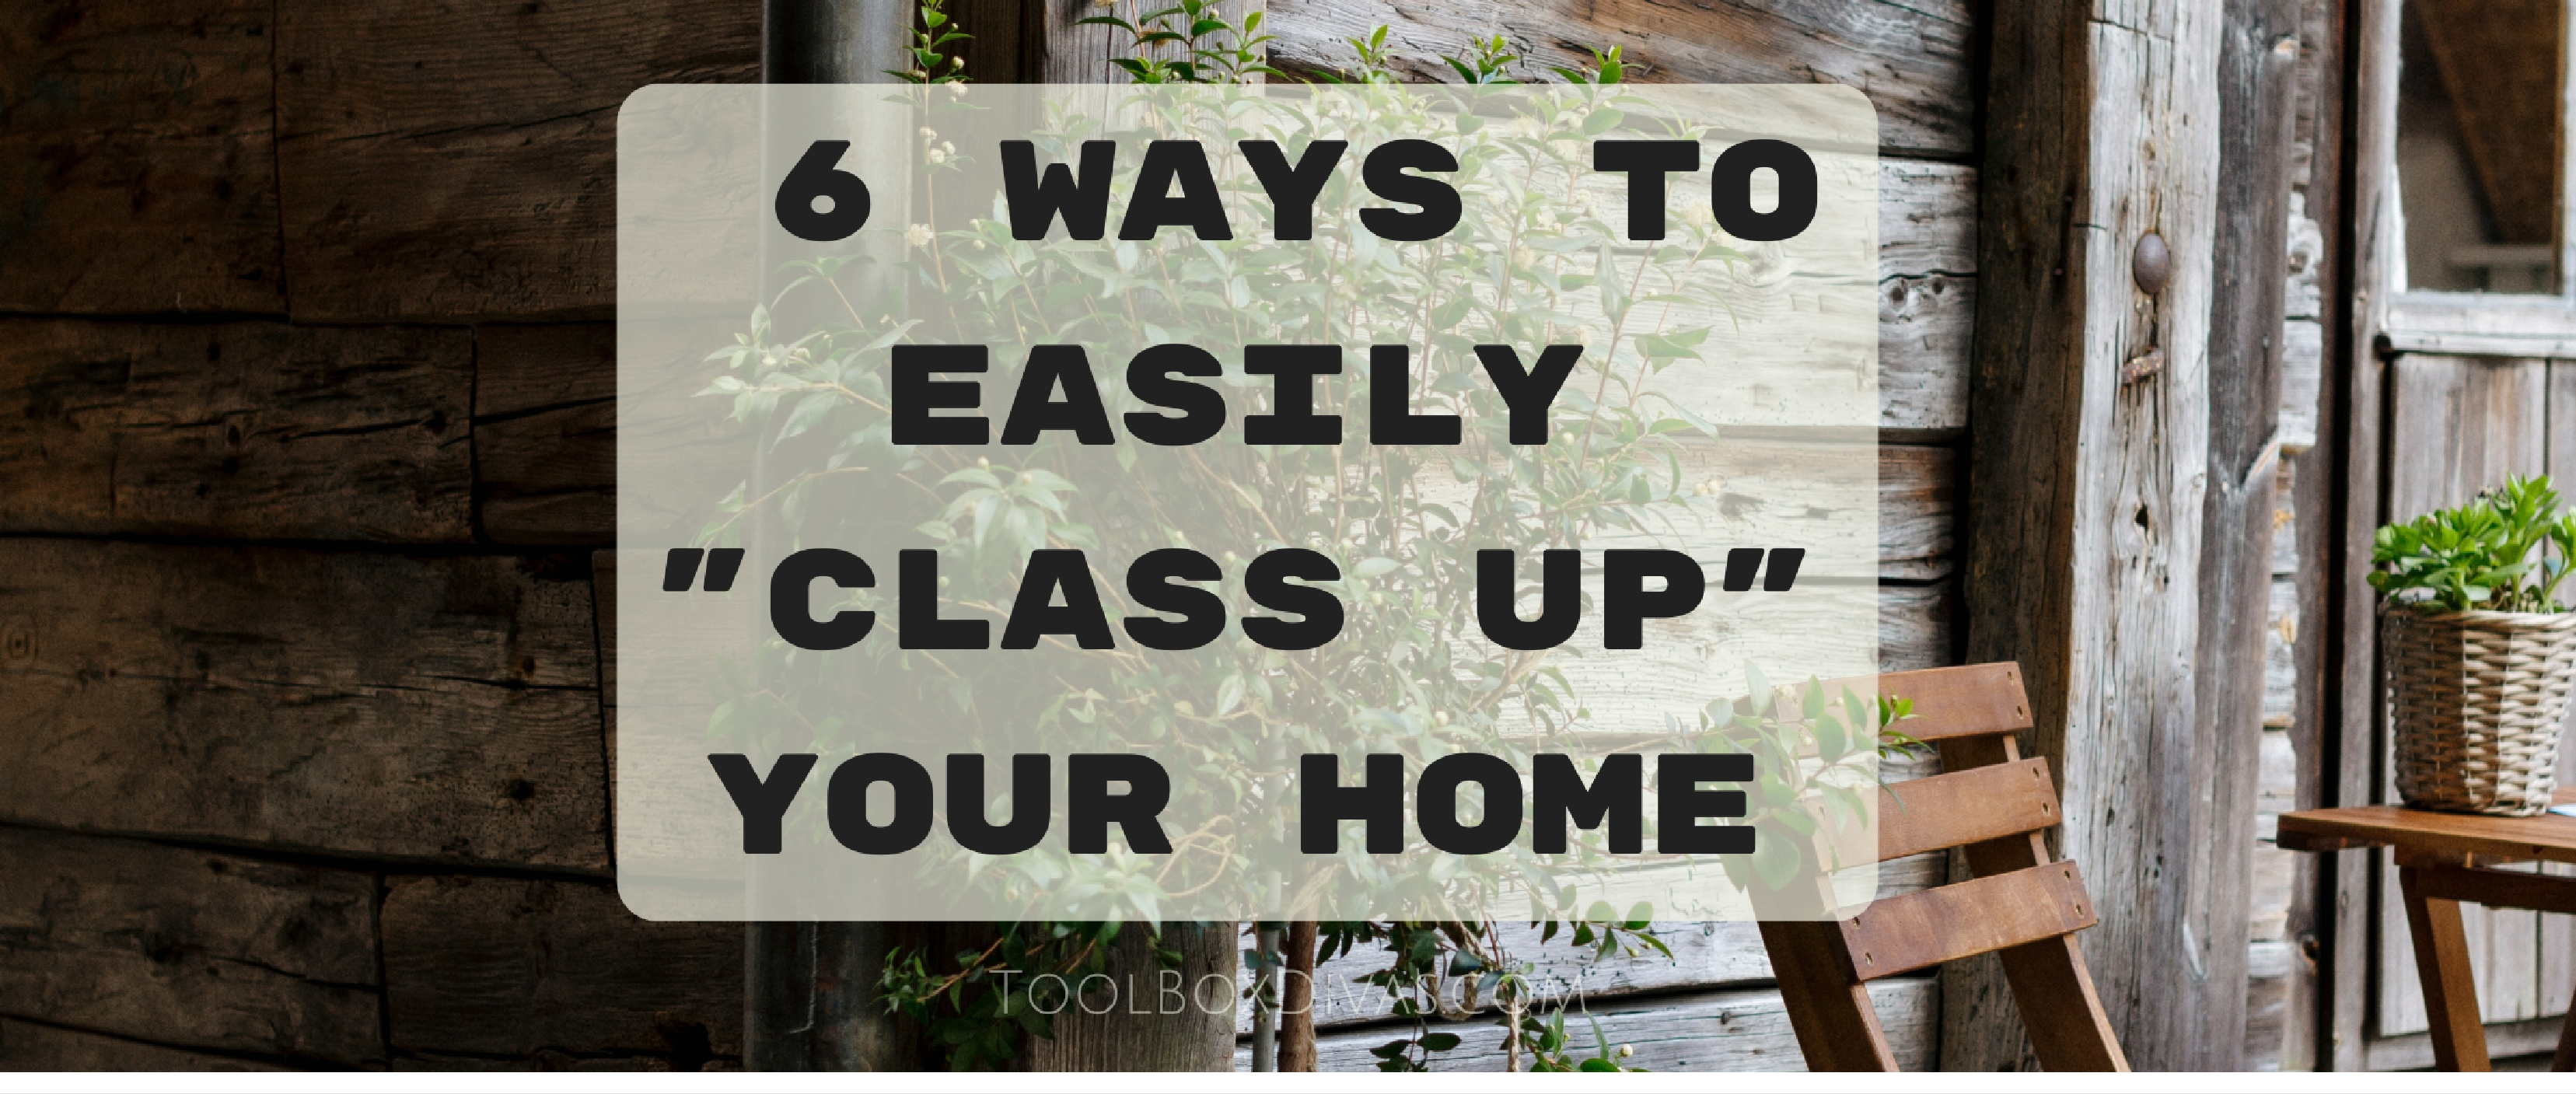 """6 Ways To Easily """"Class Up"""" Your Home"""